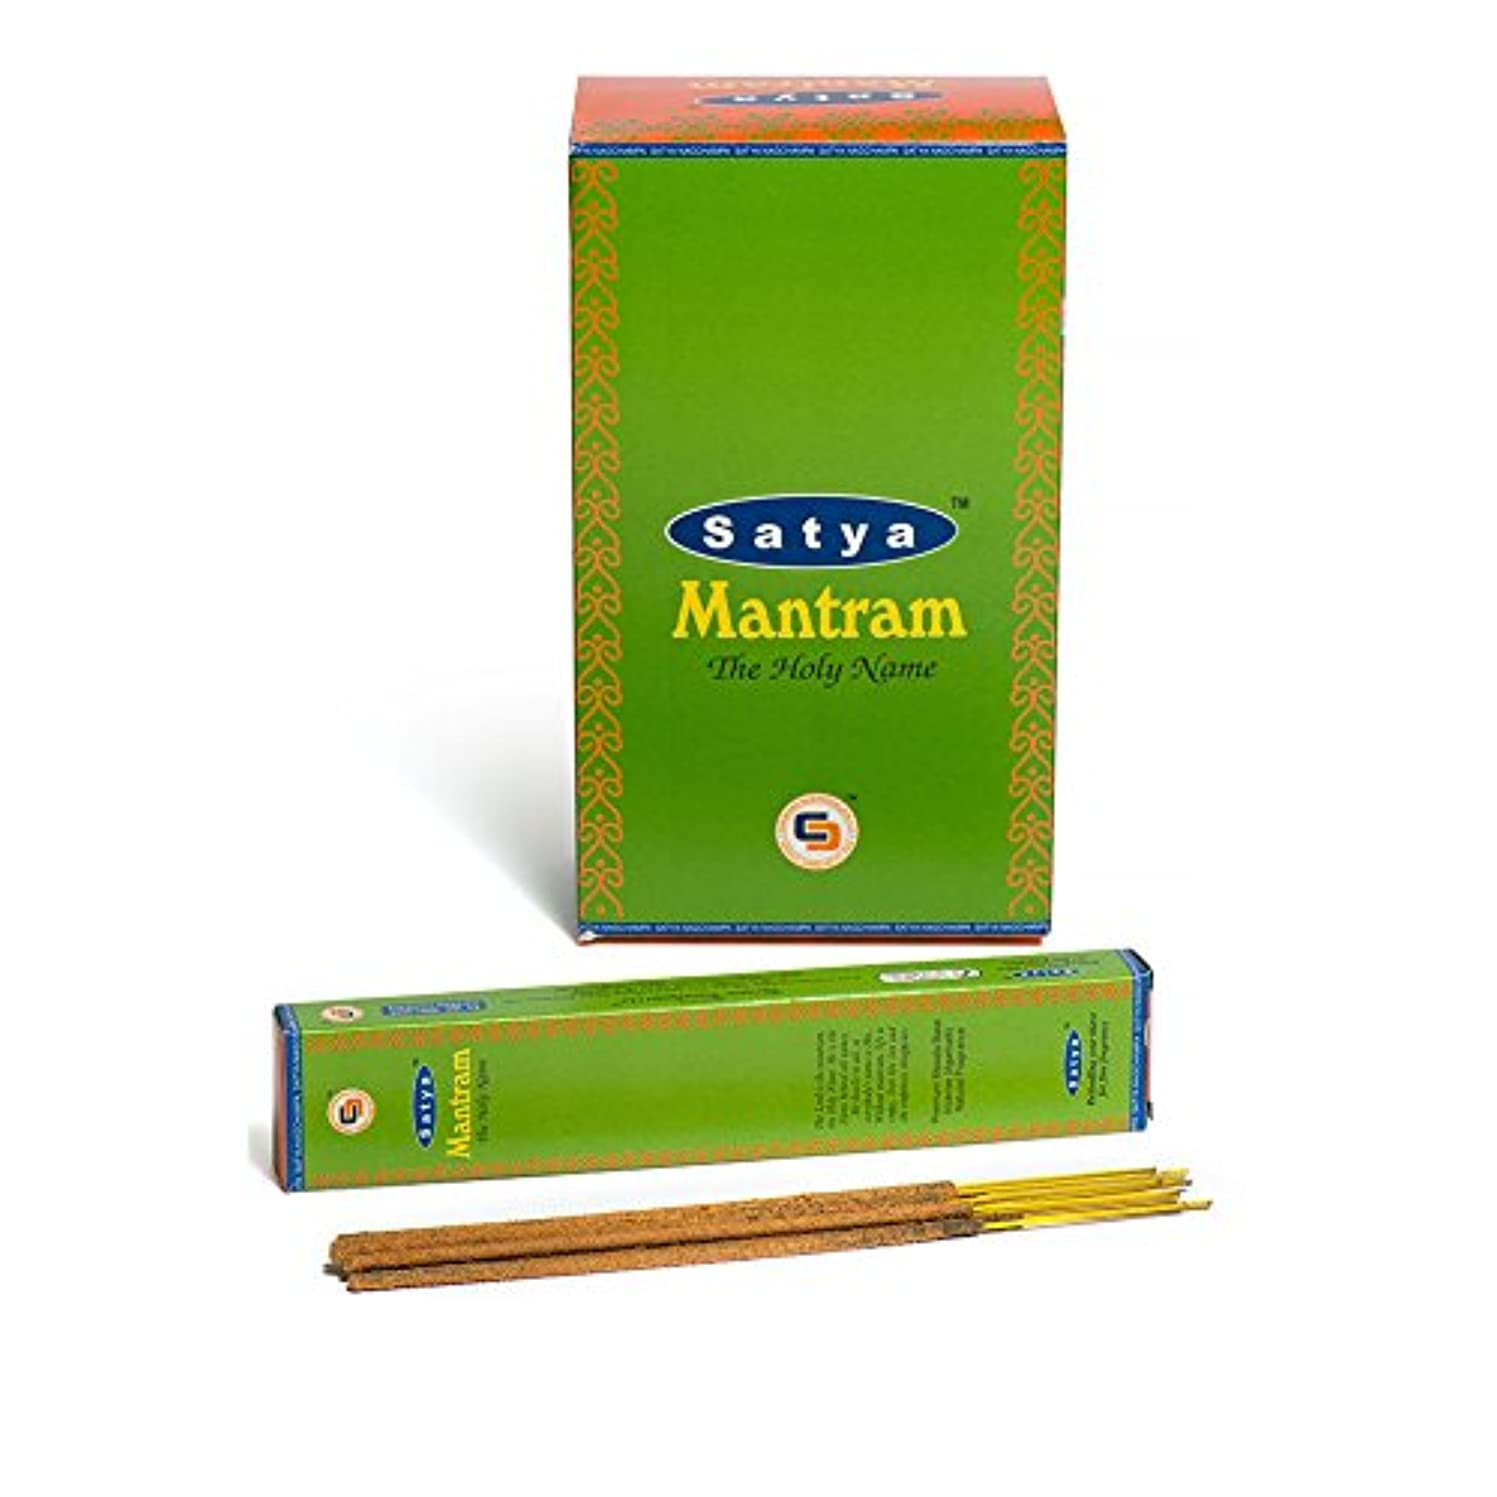 Satya Nag Champa Mantram Incense Sticks |署名Fragrance | Net Wt : 15 g x 12ボックス= 180 g | Exclusivelyインド製|エクスポート品質...